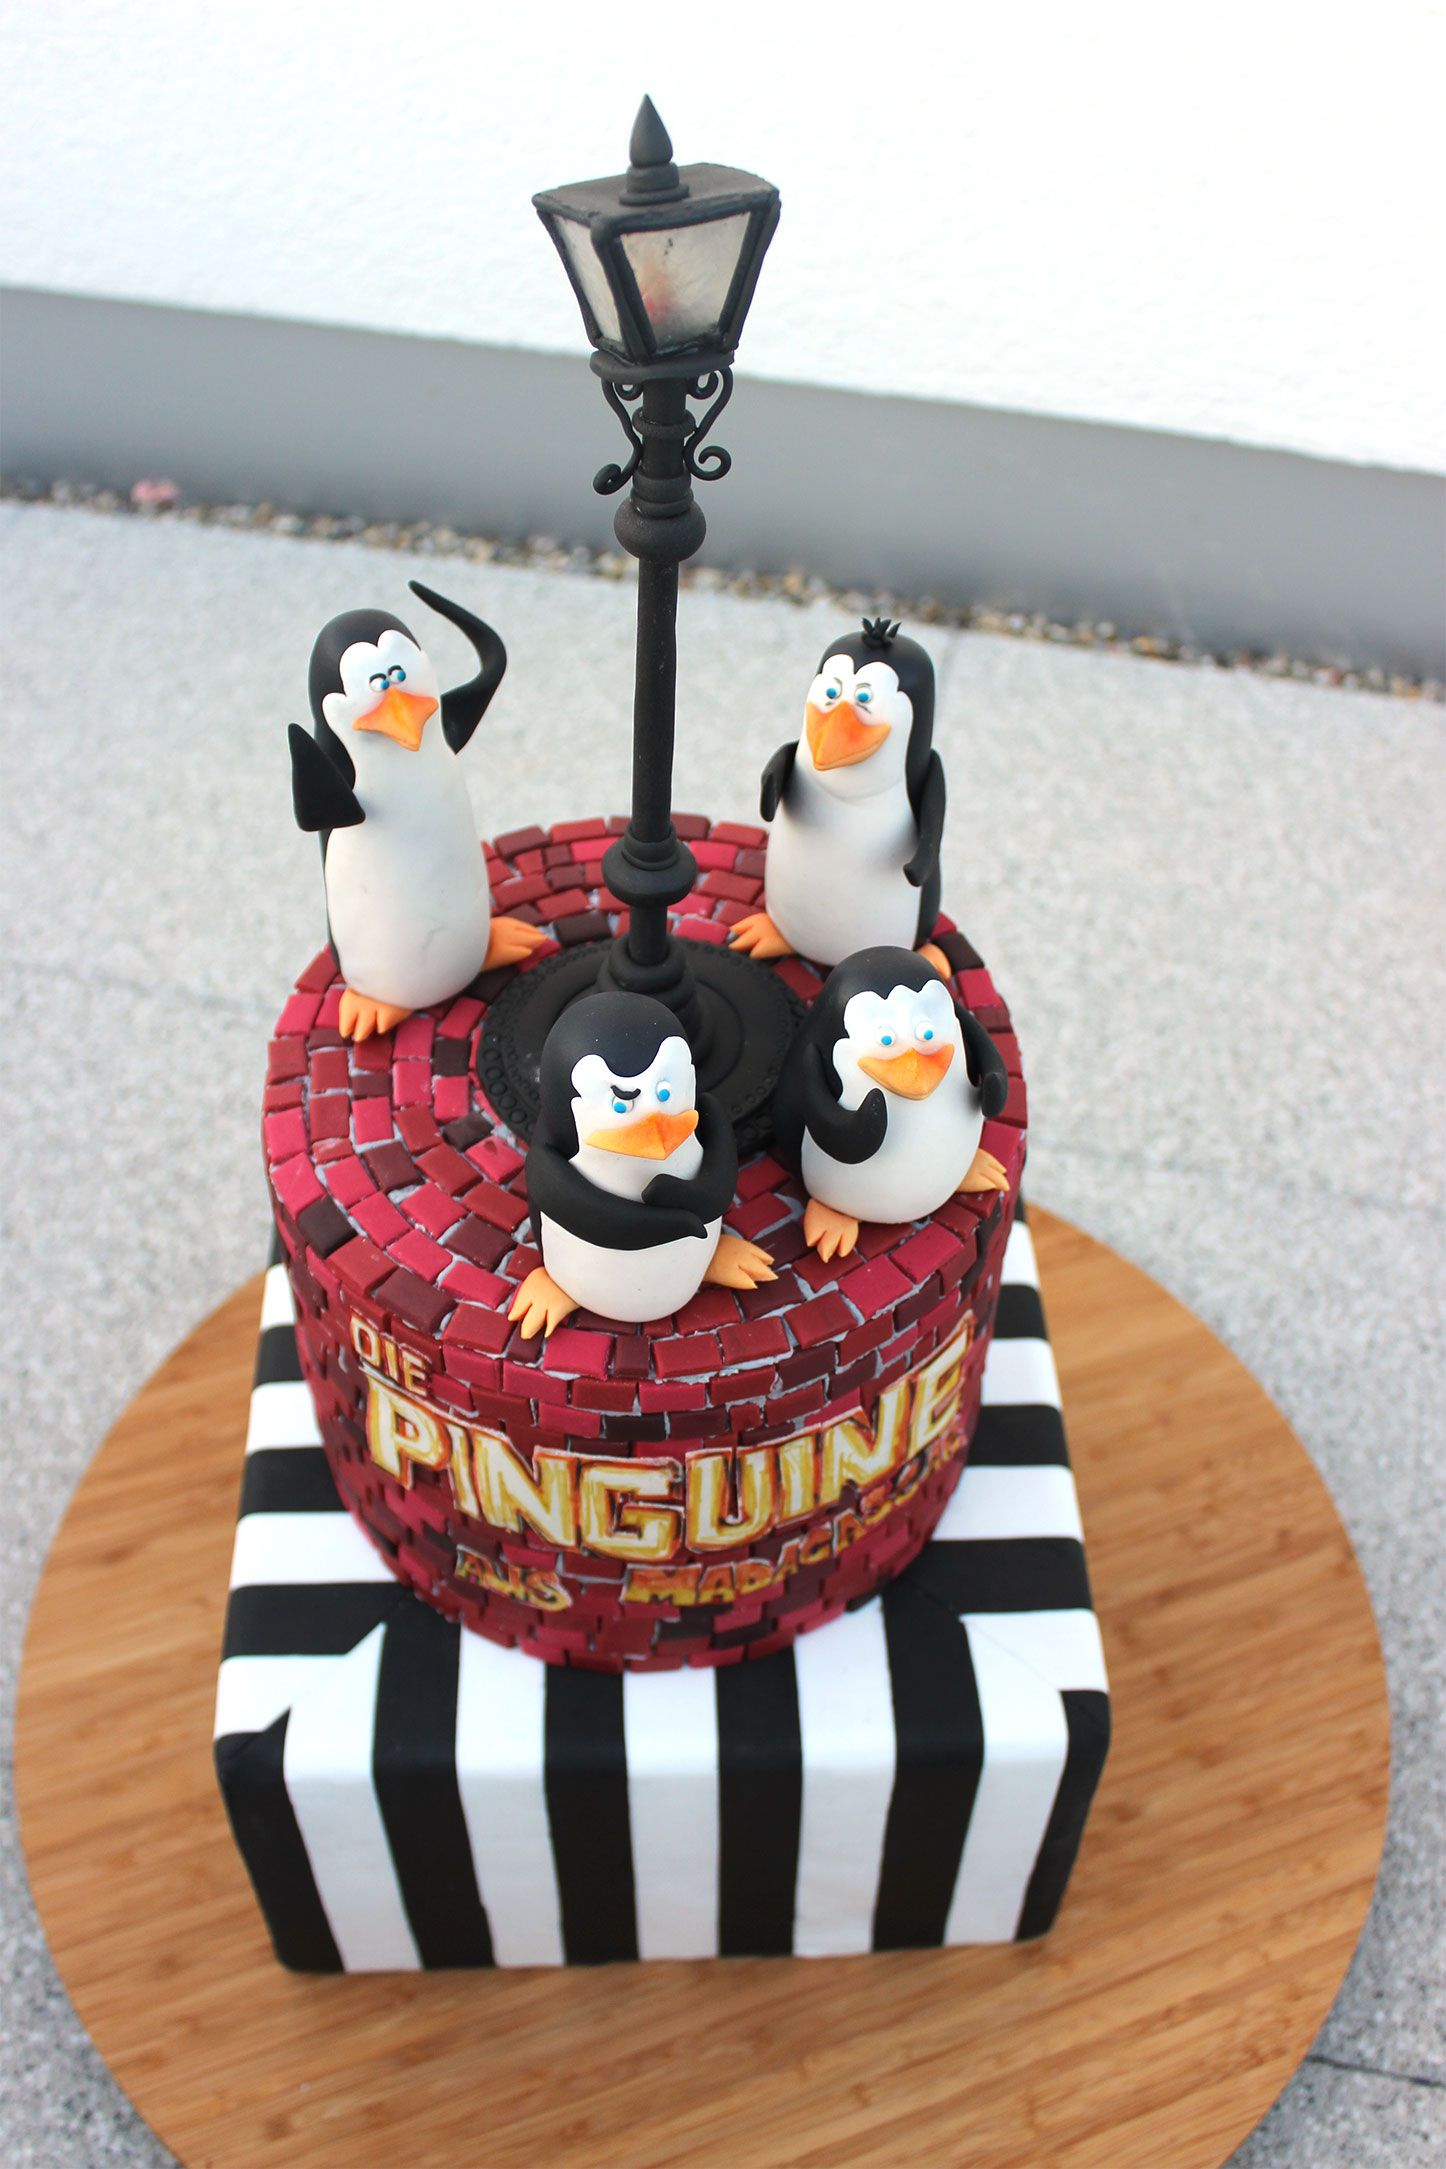 Kuchen dekoration pinguin